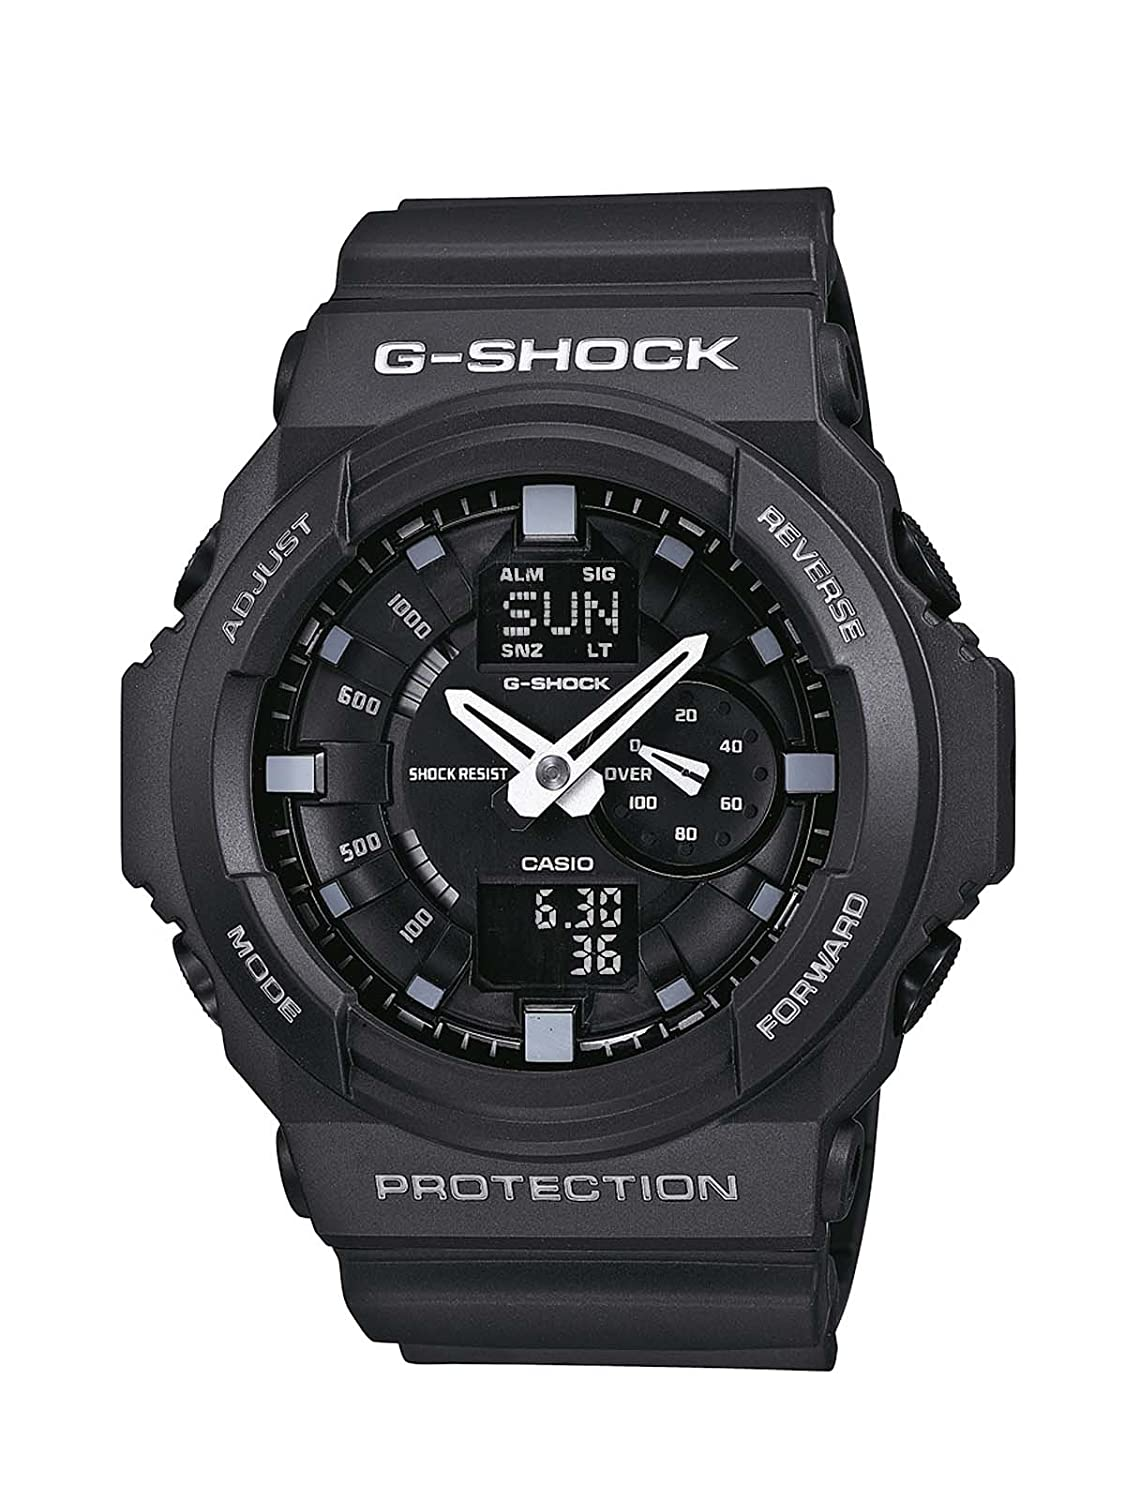 sports watches shop amazon uk casio g shock g shock men s watch casio sport laufuhren chf 100 2aver